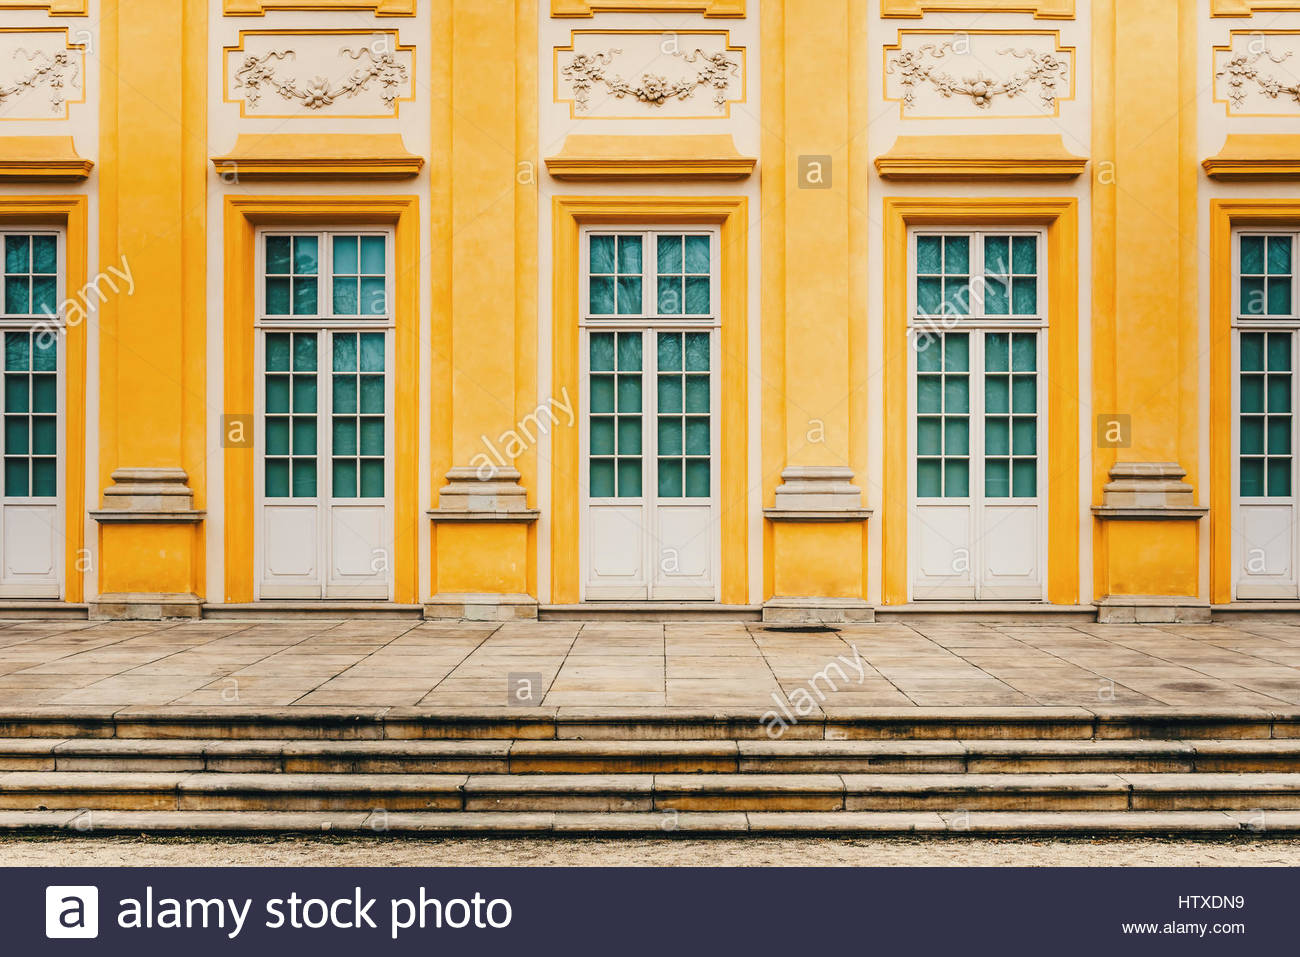 palace classic style architecture stockfotos palace classic style architecture bilder alamy. Black Bedroom Furniture Sets. Home Design Ideas